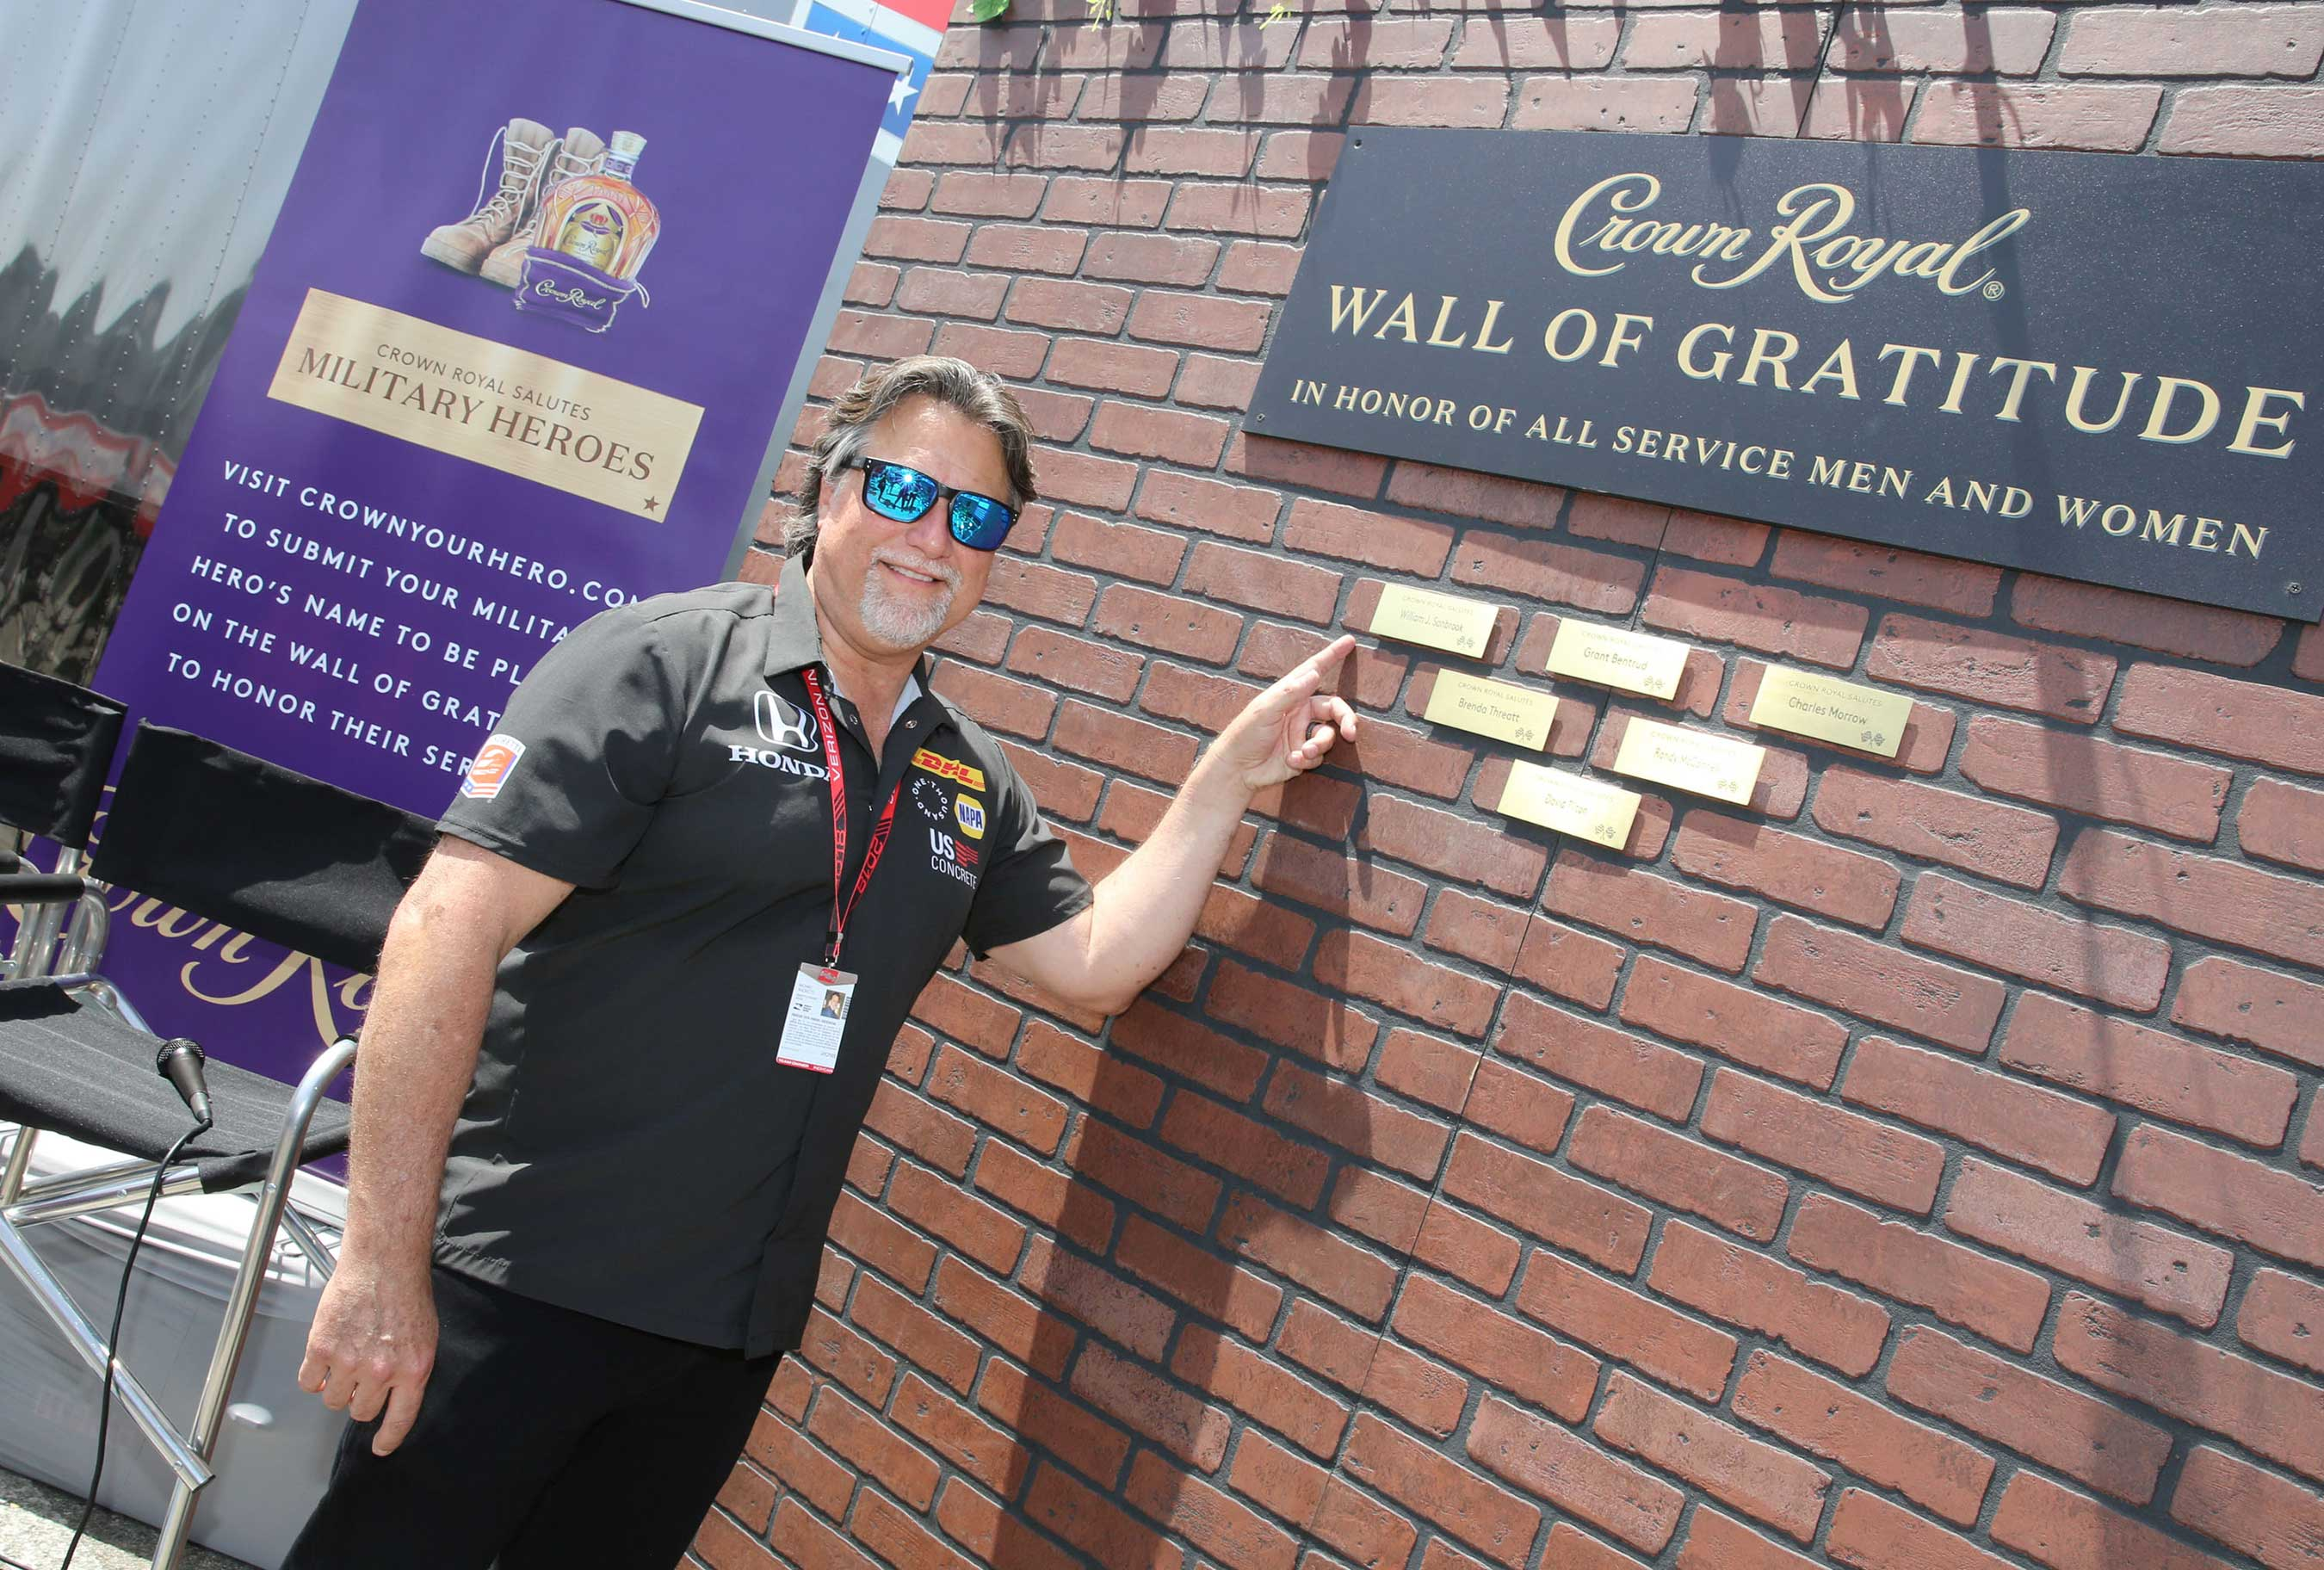 Andretti Autosport CEO and Chairman Michael Andretti pictured with the Wall of Gratitude during Crown Royal and Andretti Autosport team up to honor military heroes on April 13, 2018 in Long Beach, California. (Photo by Rachel Murray/Getty Images for Crown Royal)